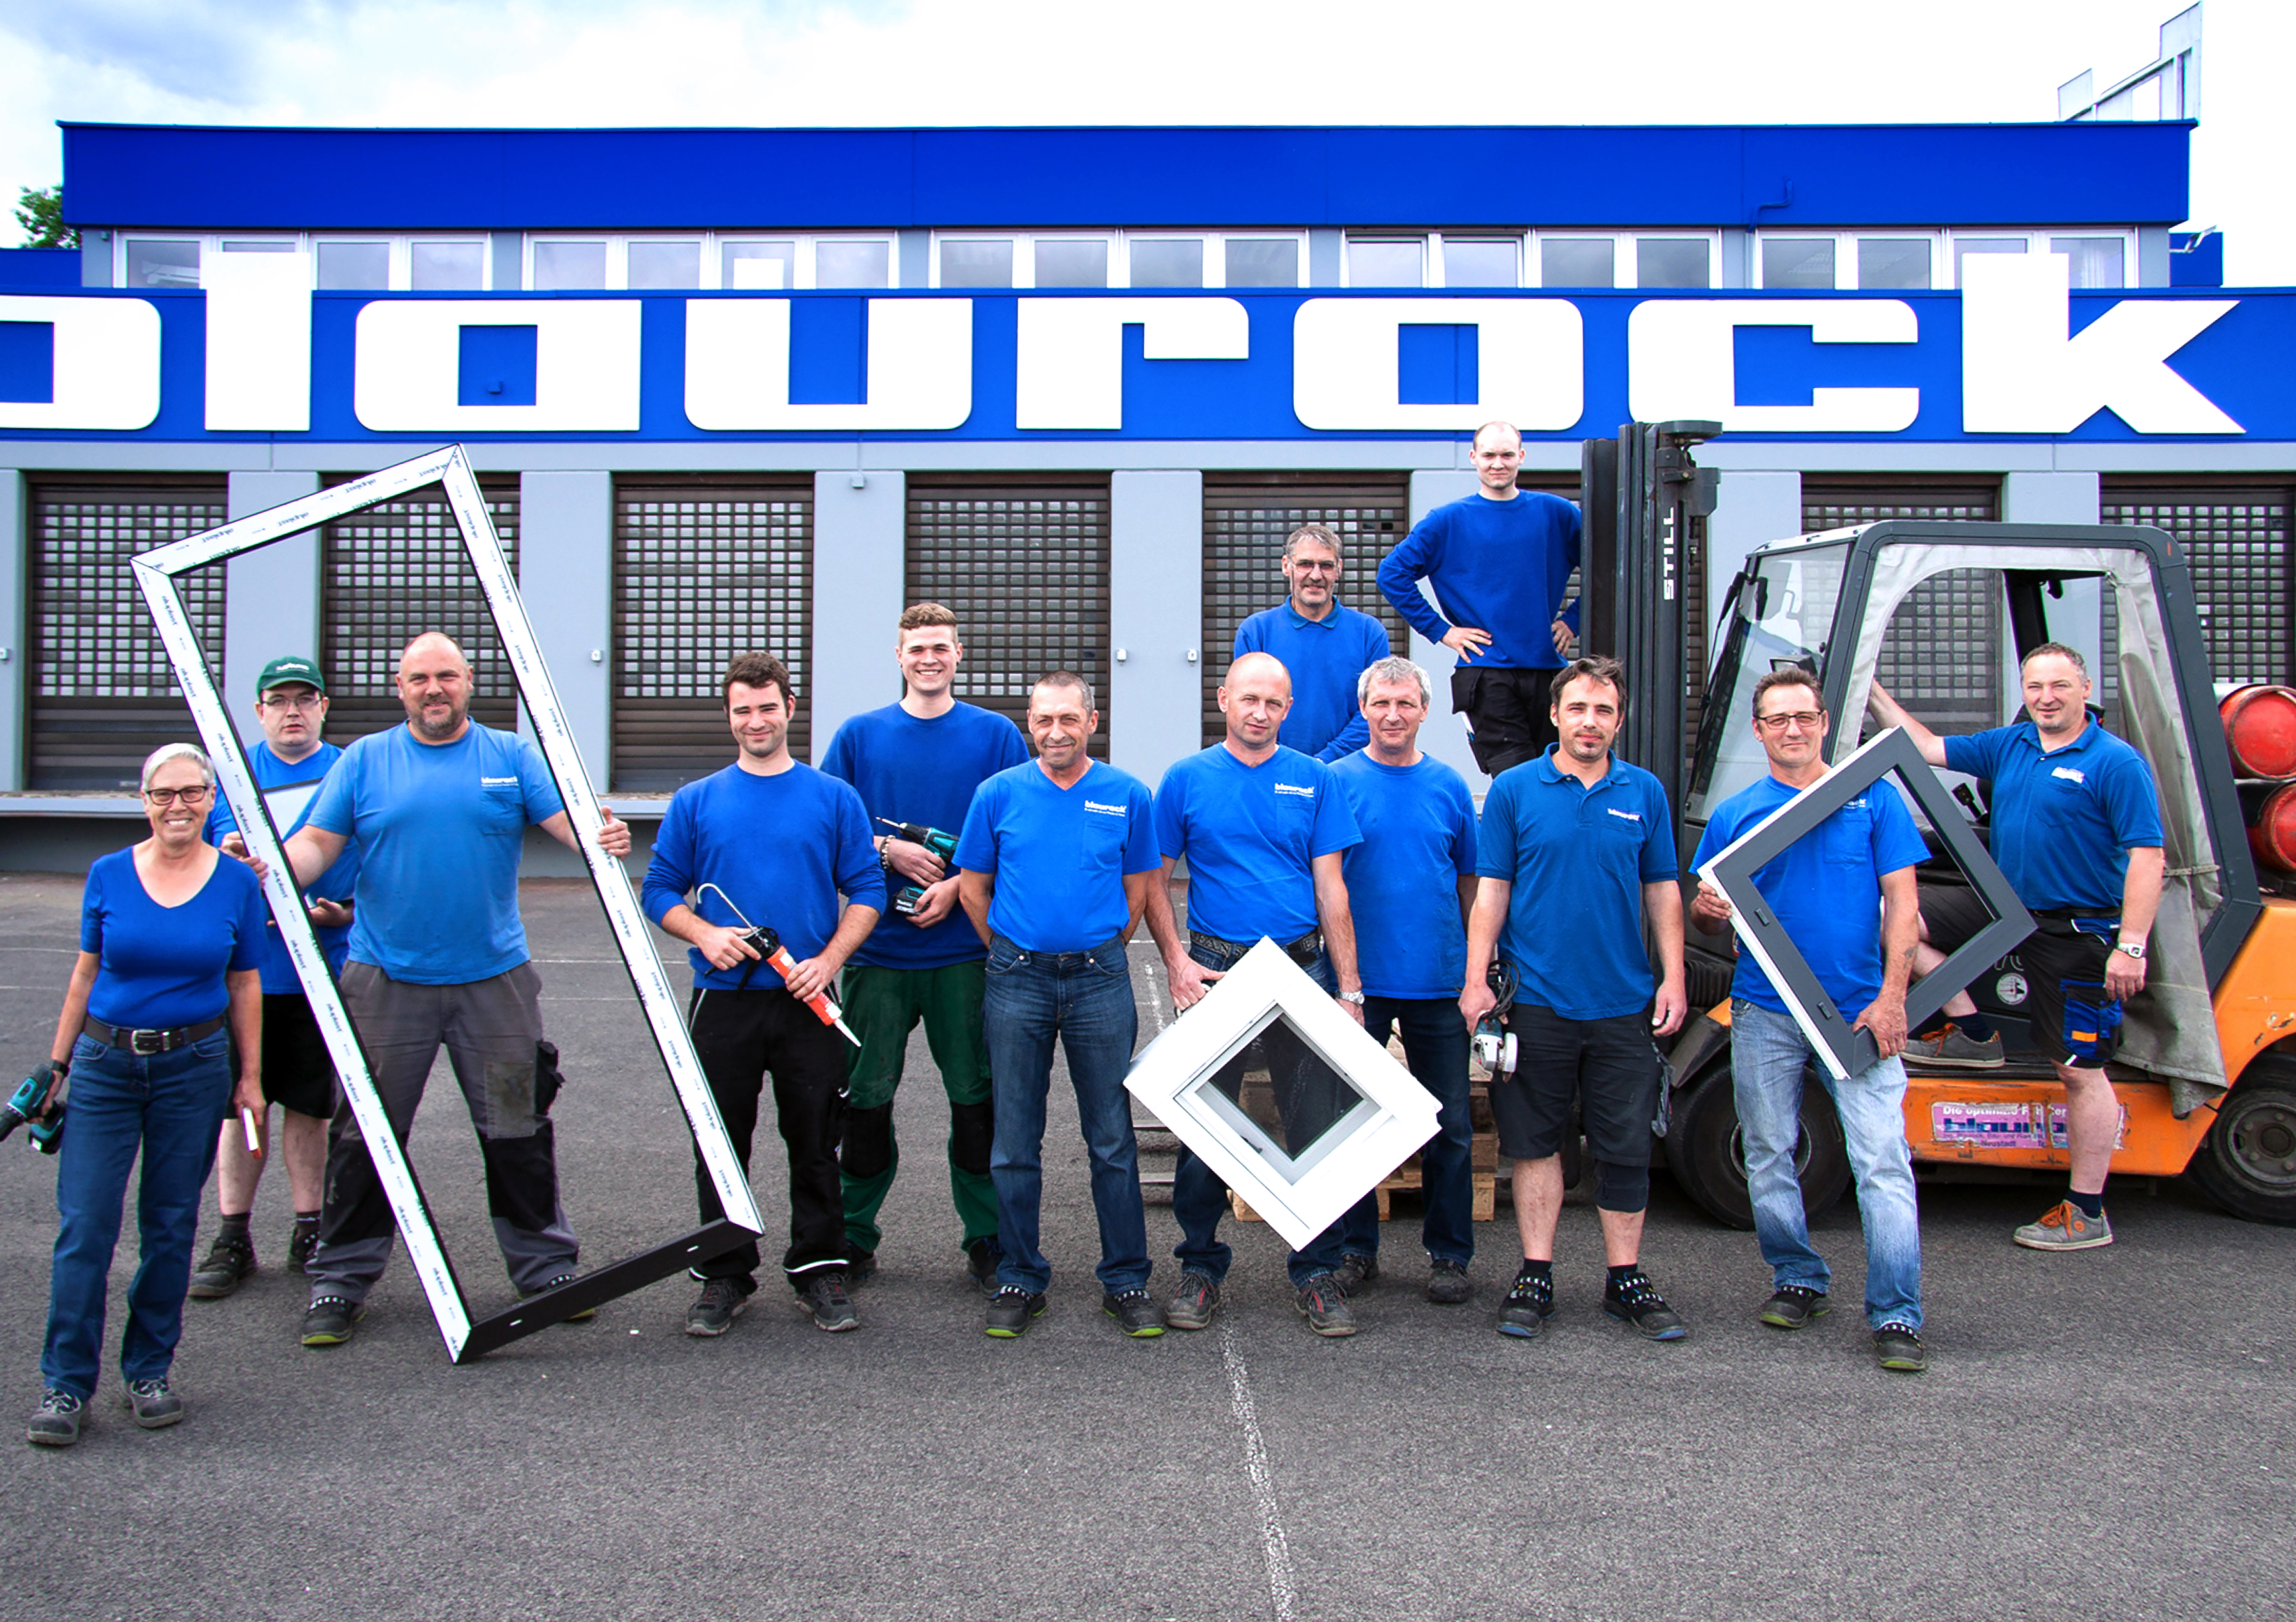 Blaurock Team Production Window Door